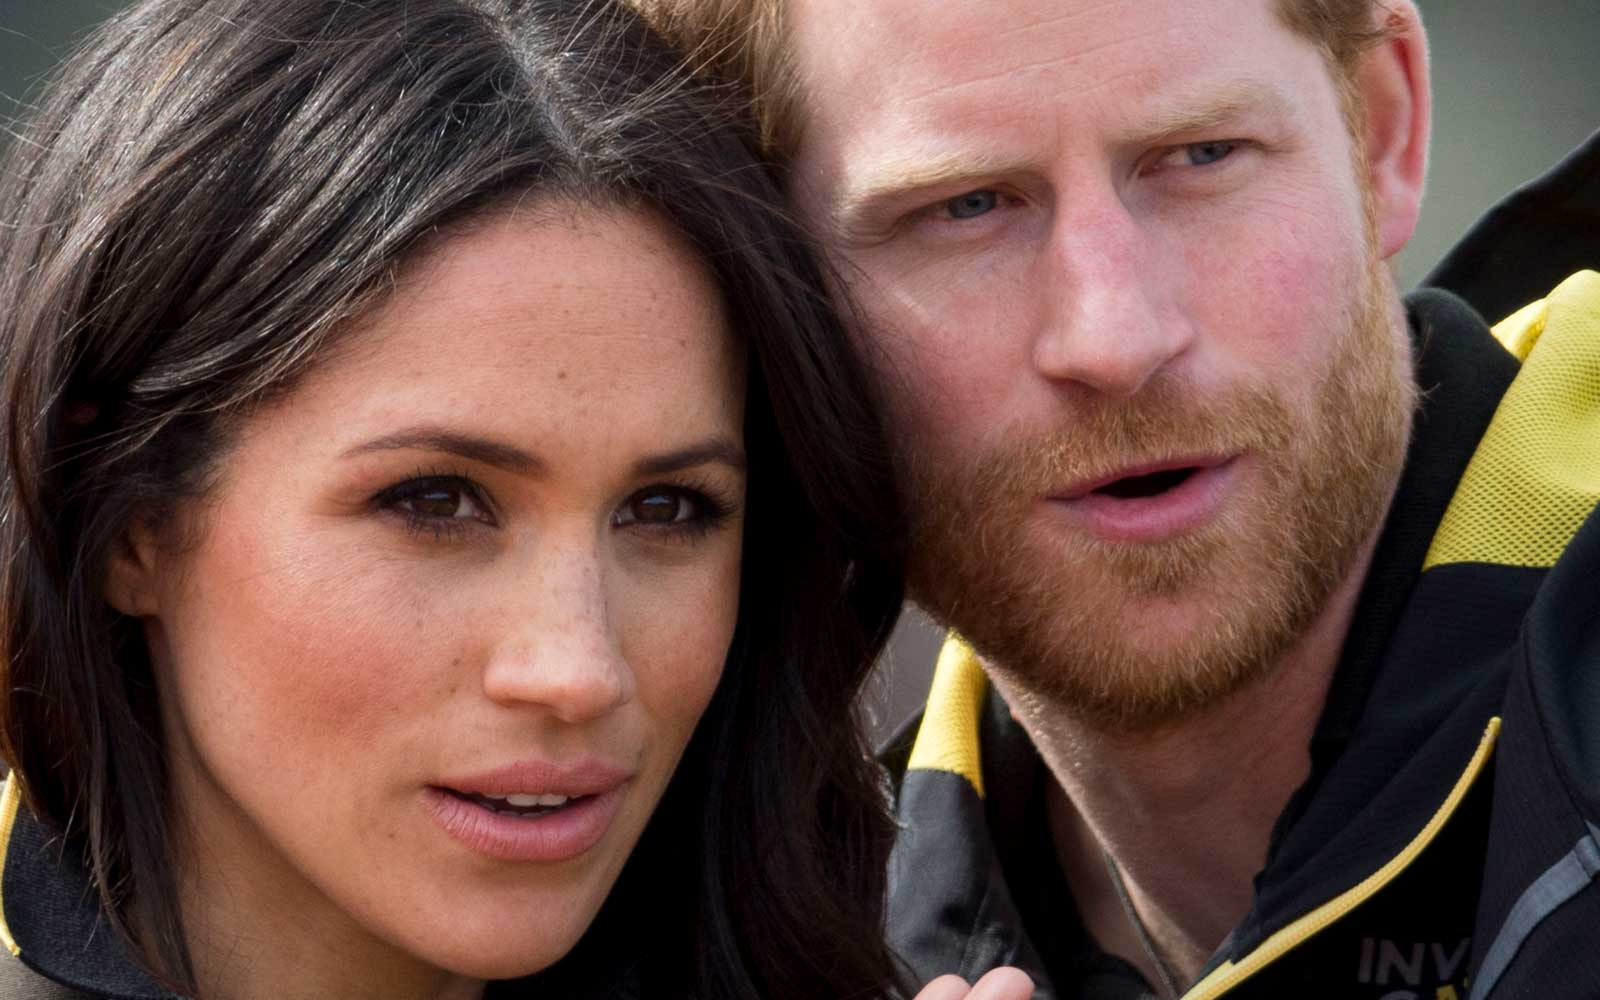 Prince Harry Reveals How Many Kids He and Meghan Plan to Have